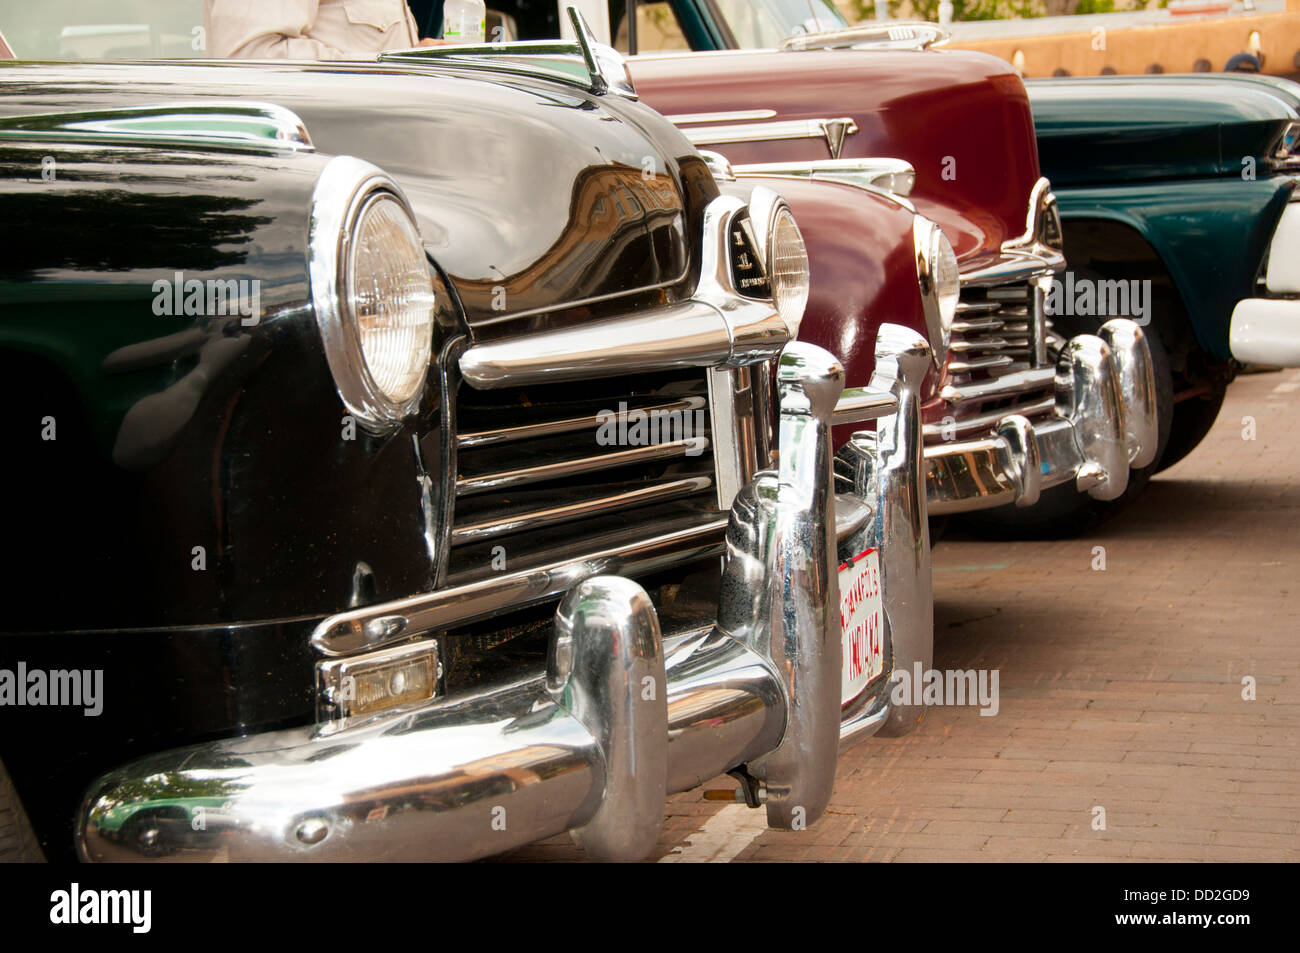 vintage automobiles Stock Photo, Royalty Free Image: 59678453 - Alamy